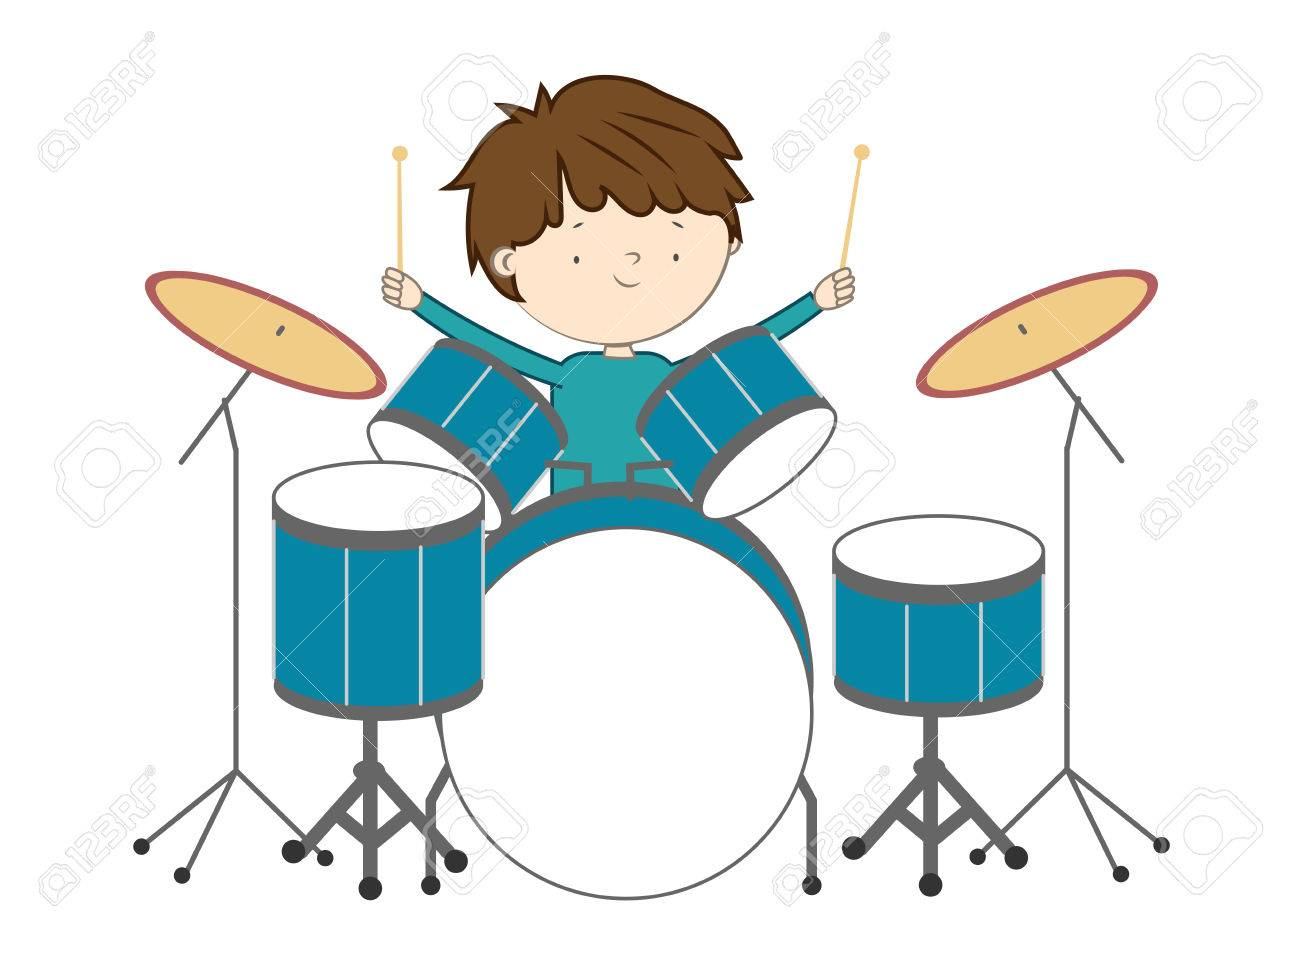 Boy playing drums isolated on white background - Vector illustration Stock Vector - 83879286